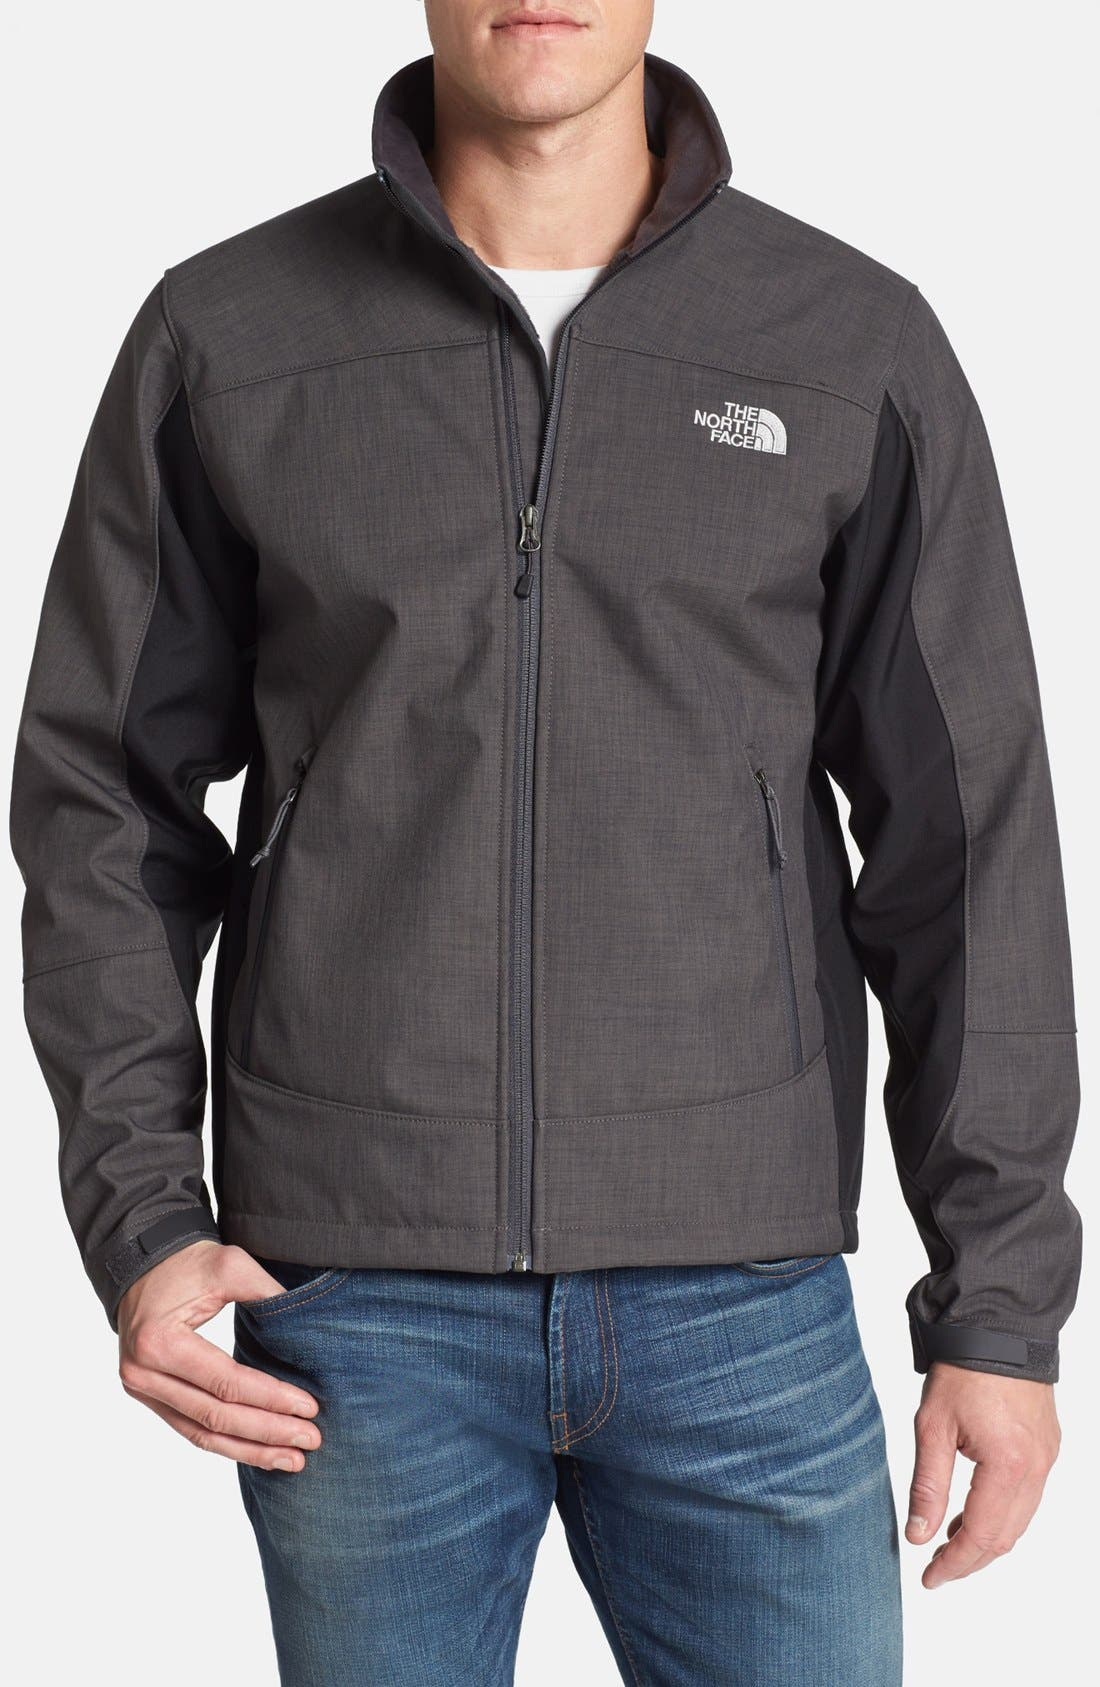 Alternate Image 1 Selected - The North Face 'Chromium' Jacket